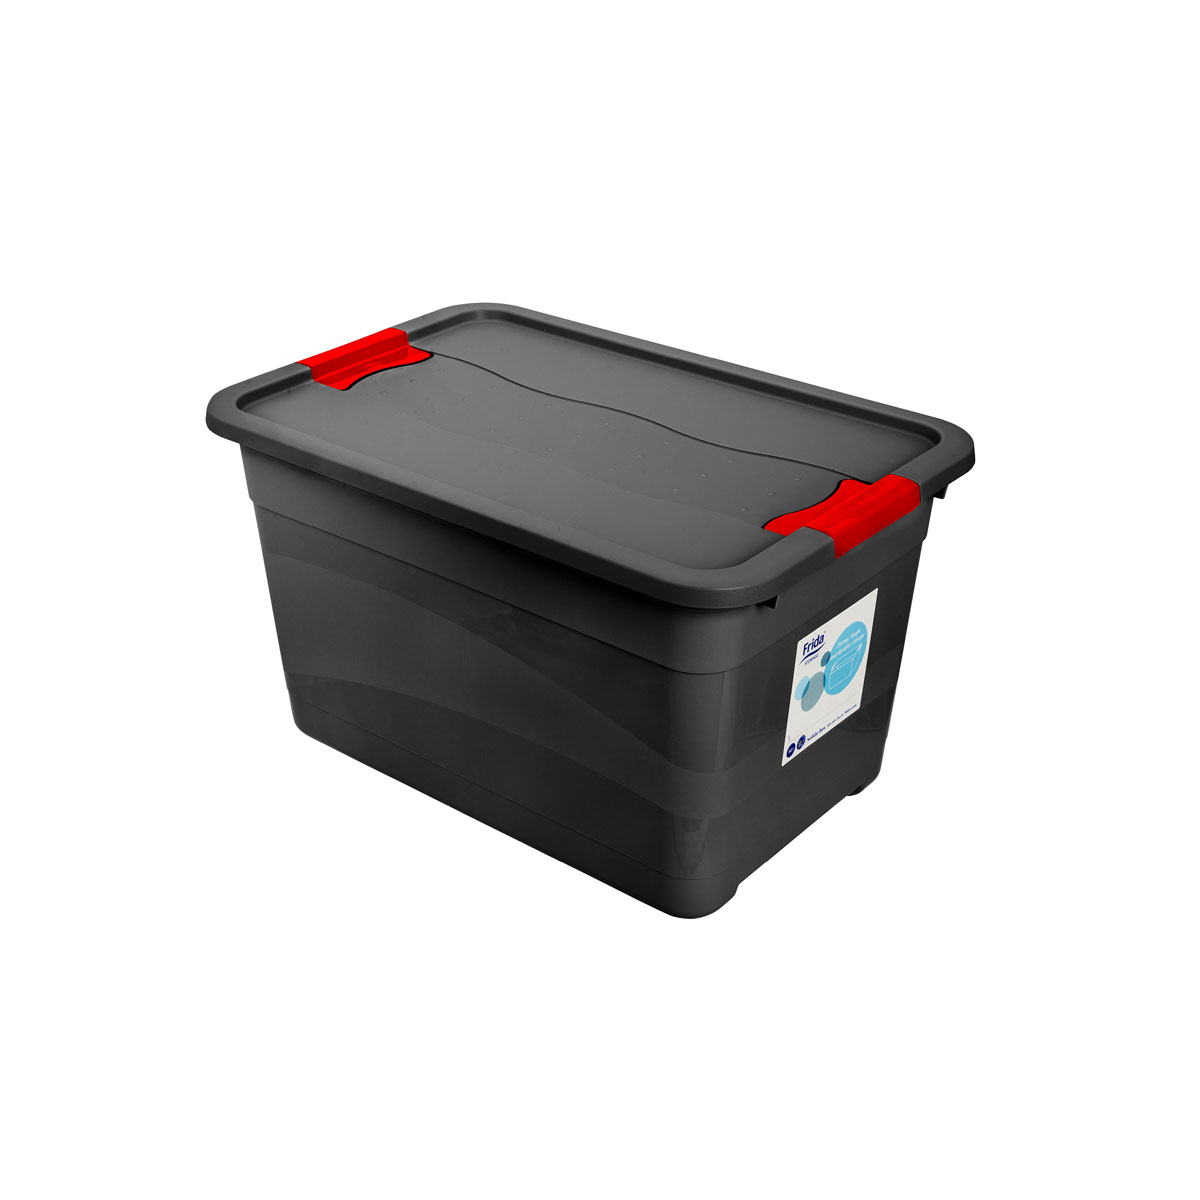 Storage back with lid in extra impact resistant plastic